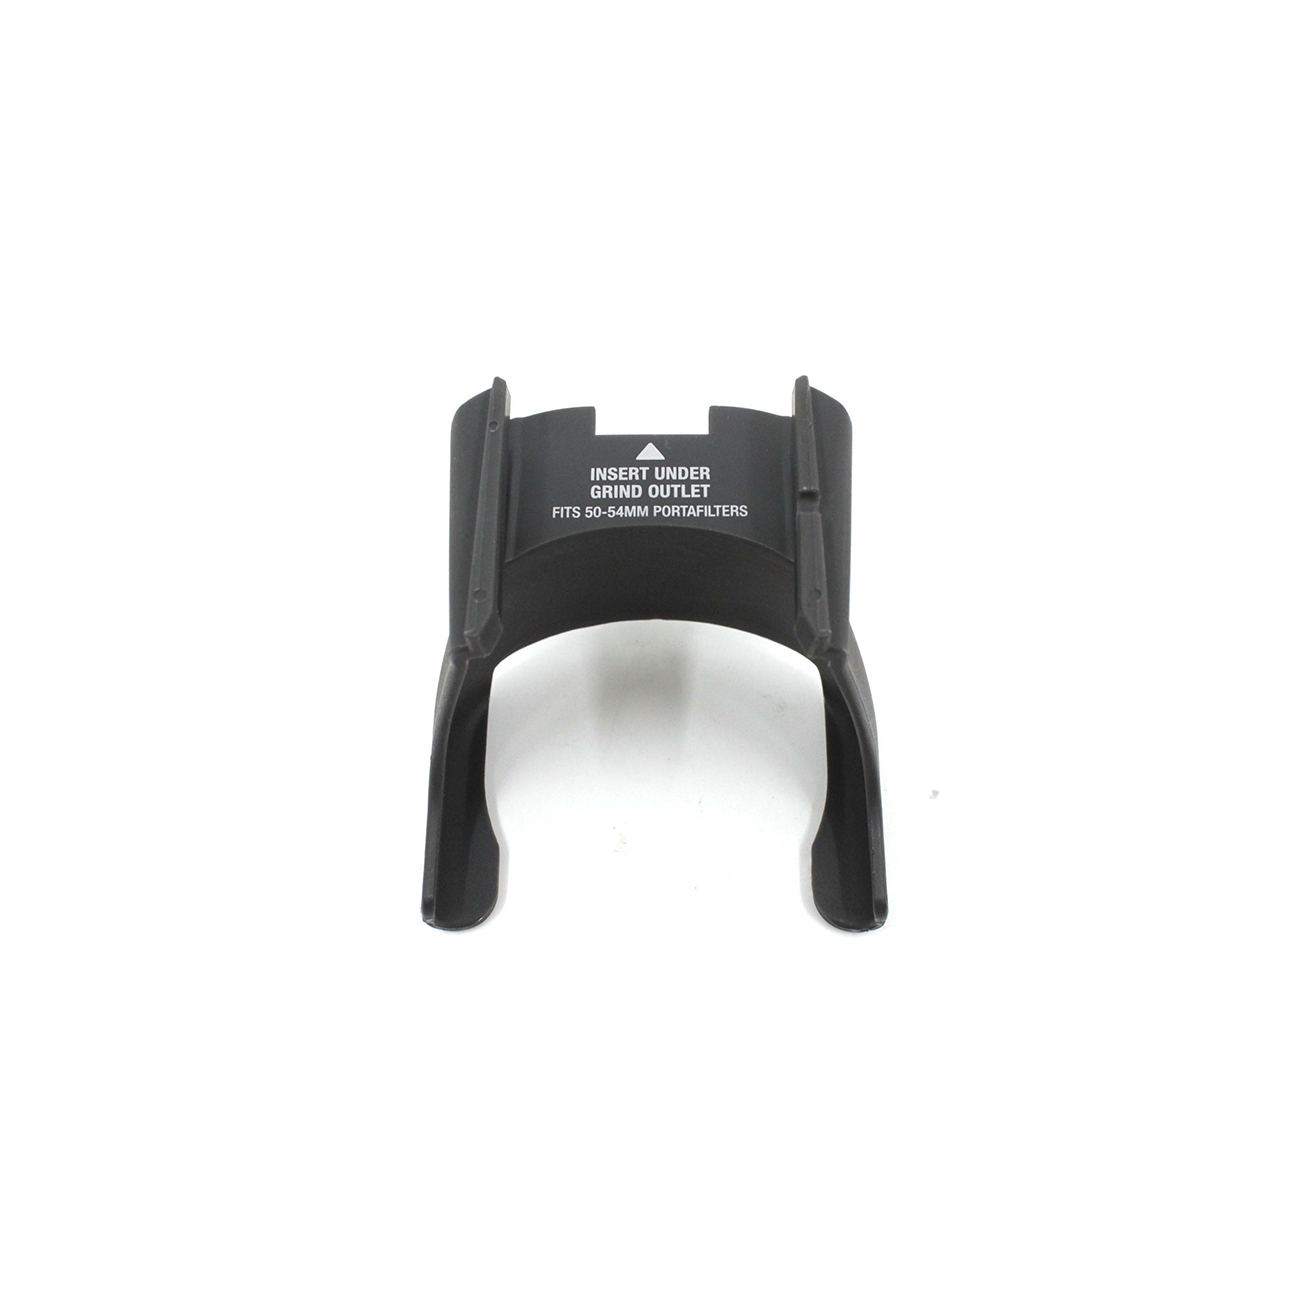 50 - 54mm Portafilter Holder